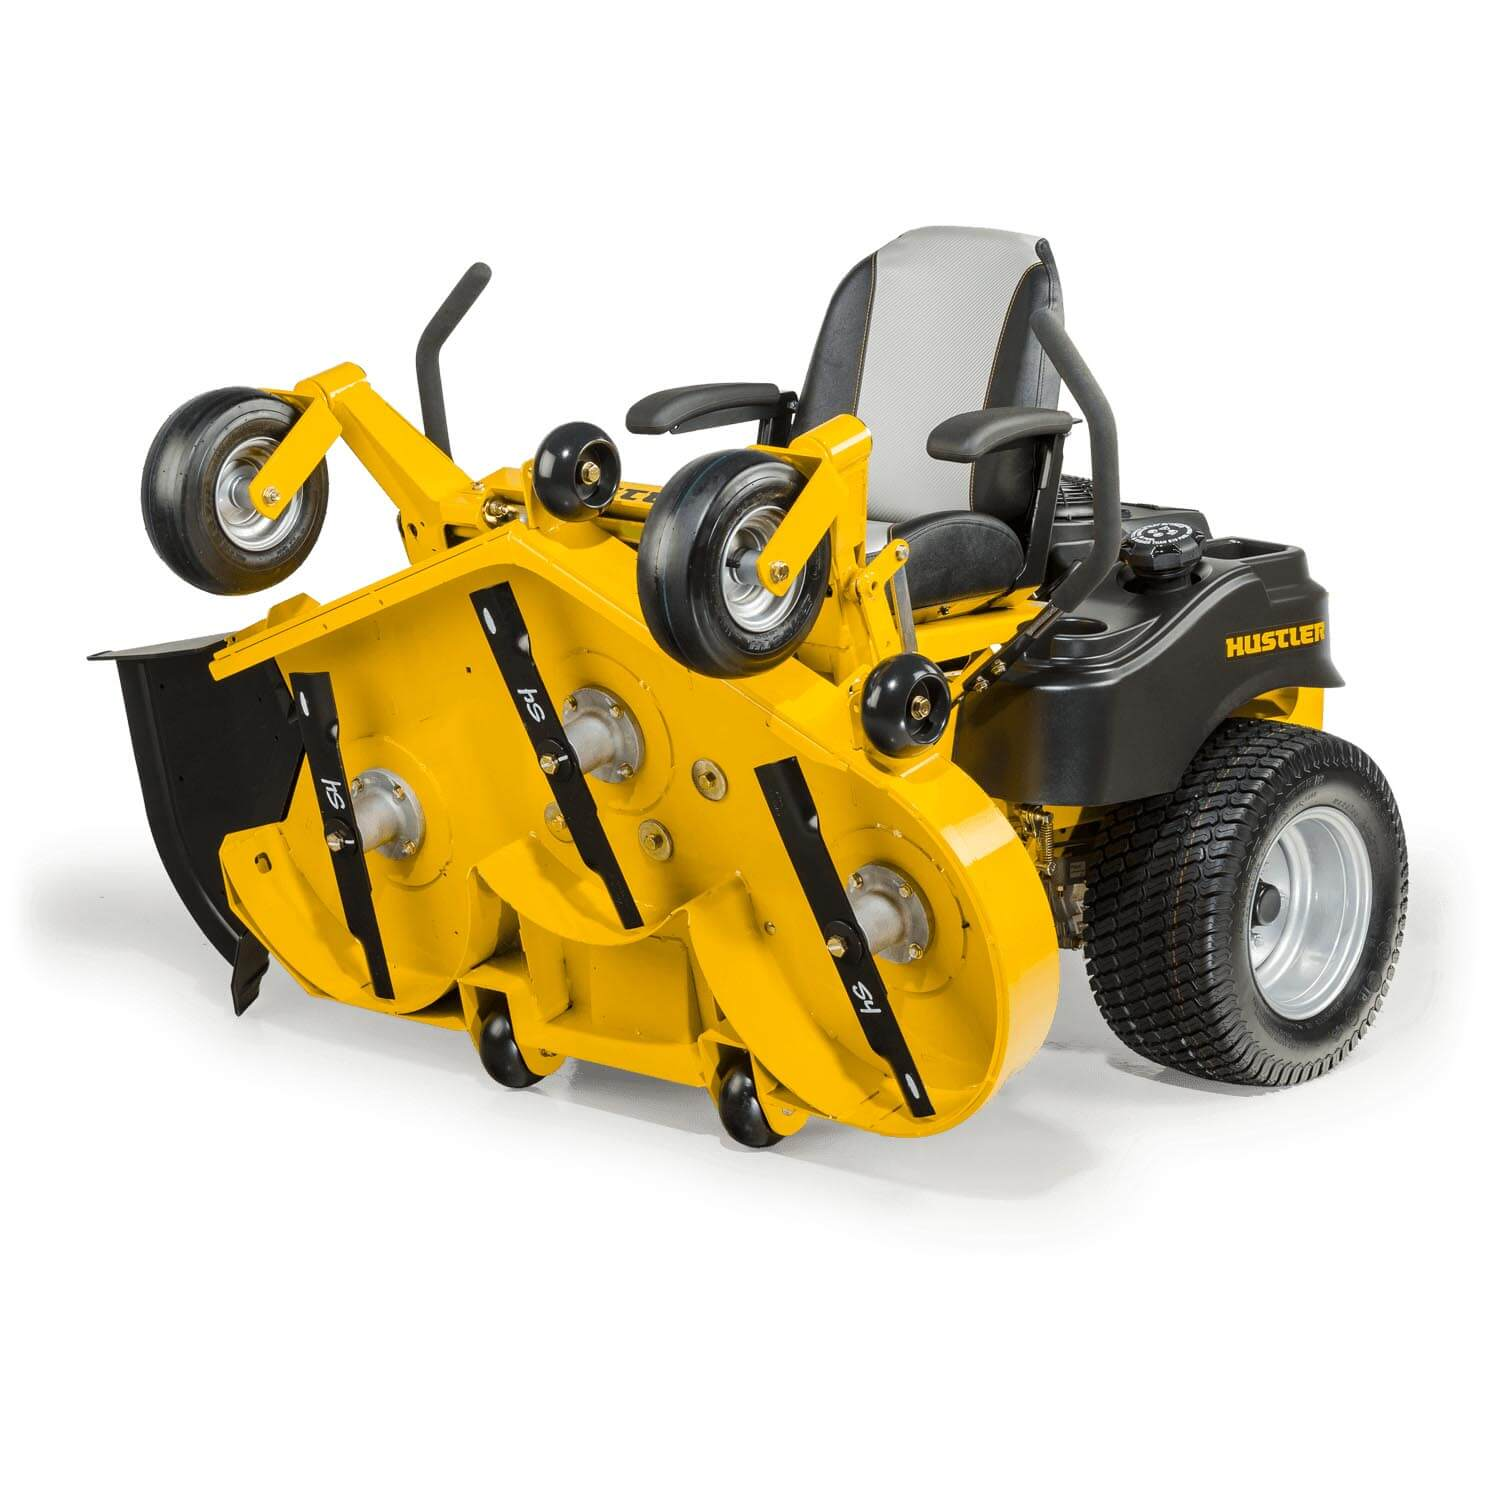 Image of the front three quarters of a yellow riding mower with the frame folded to see the underside of the mower deck